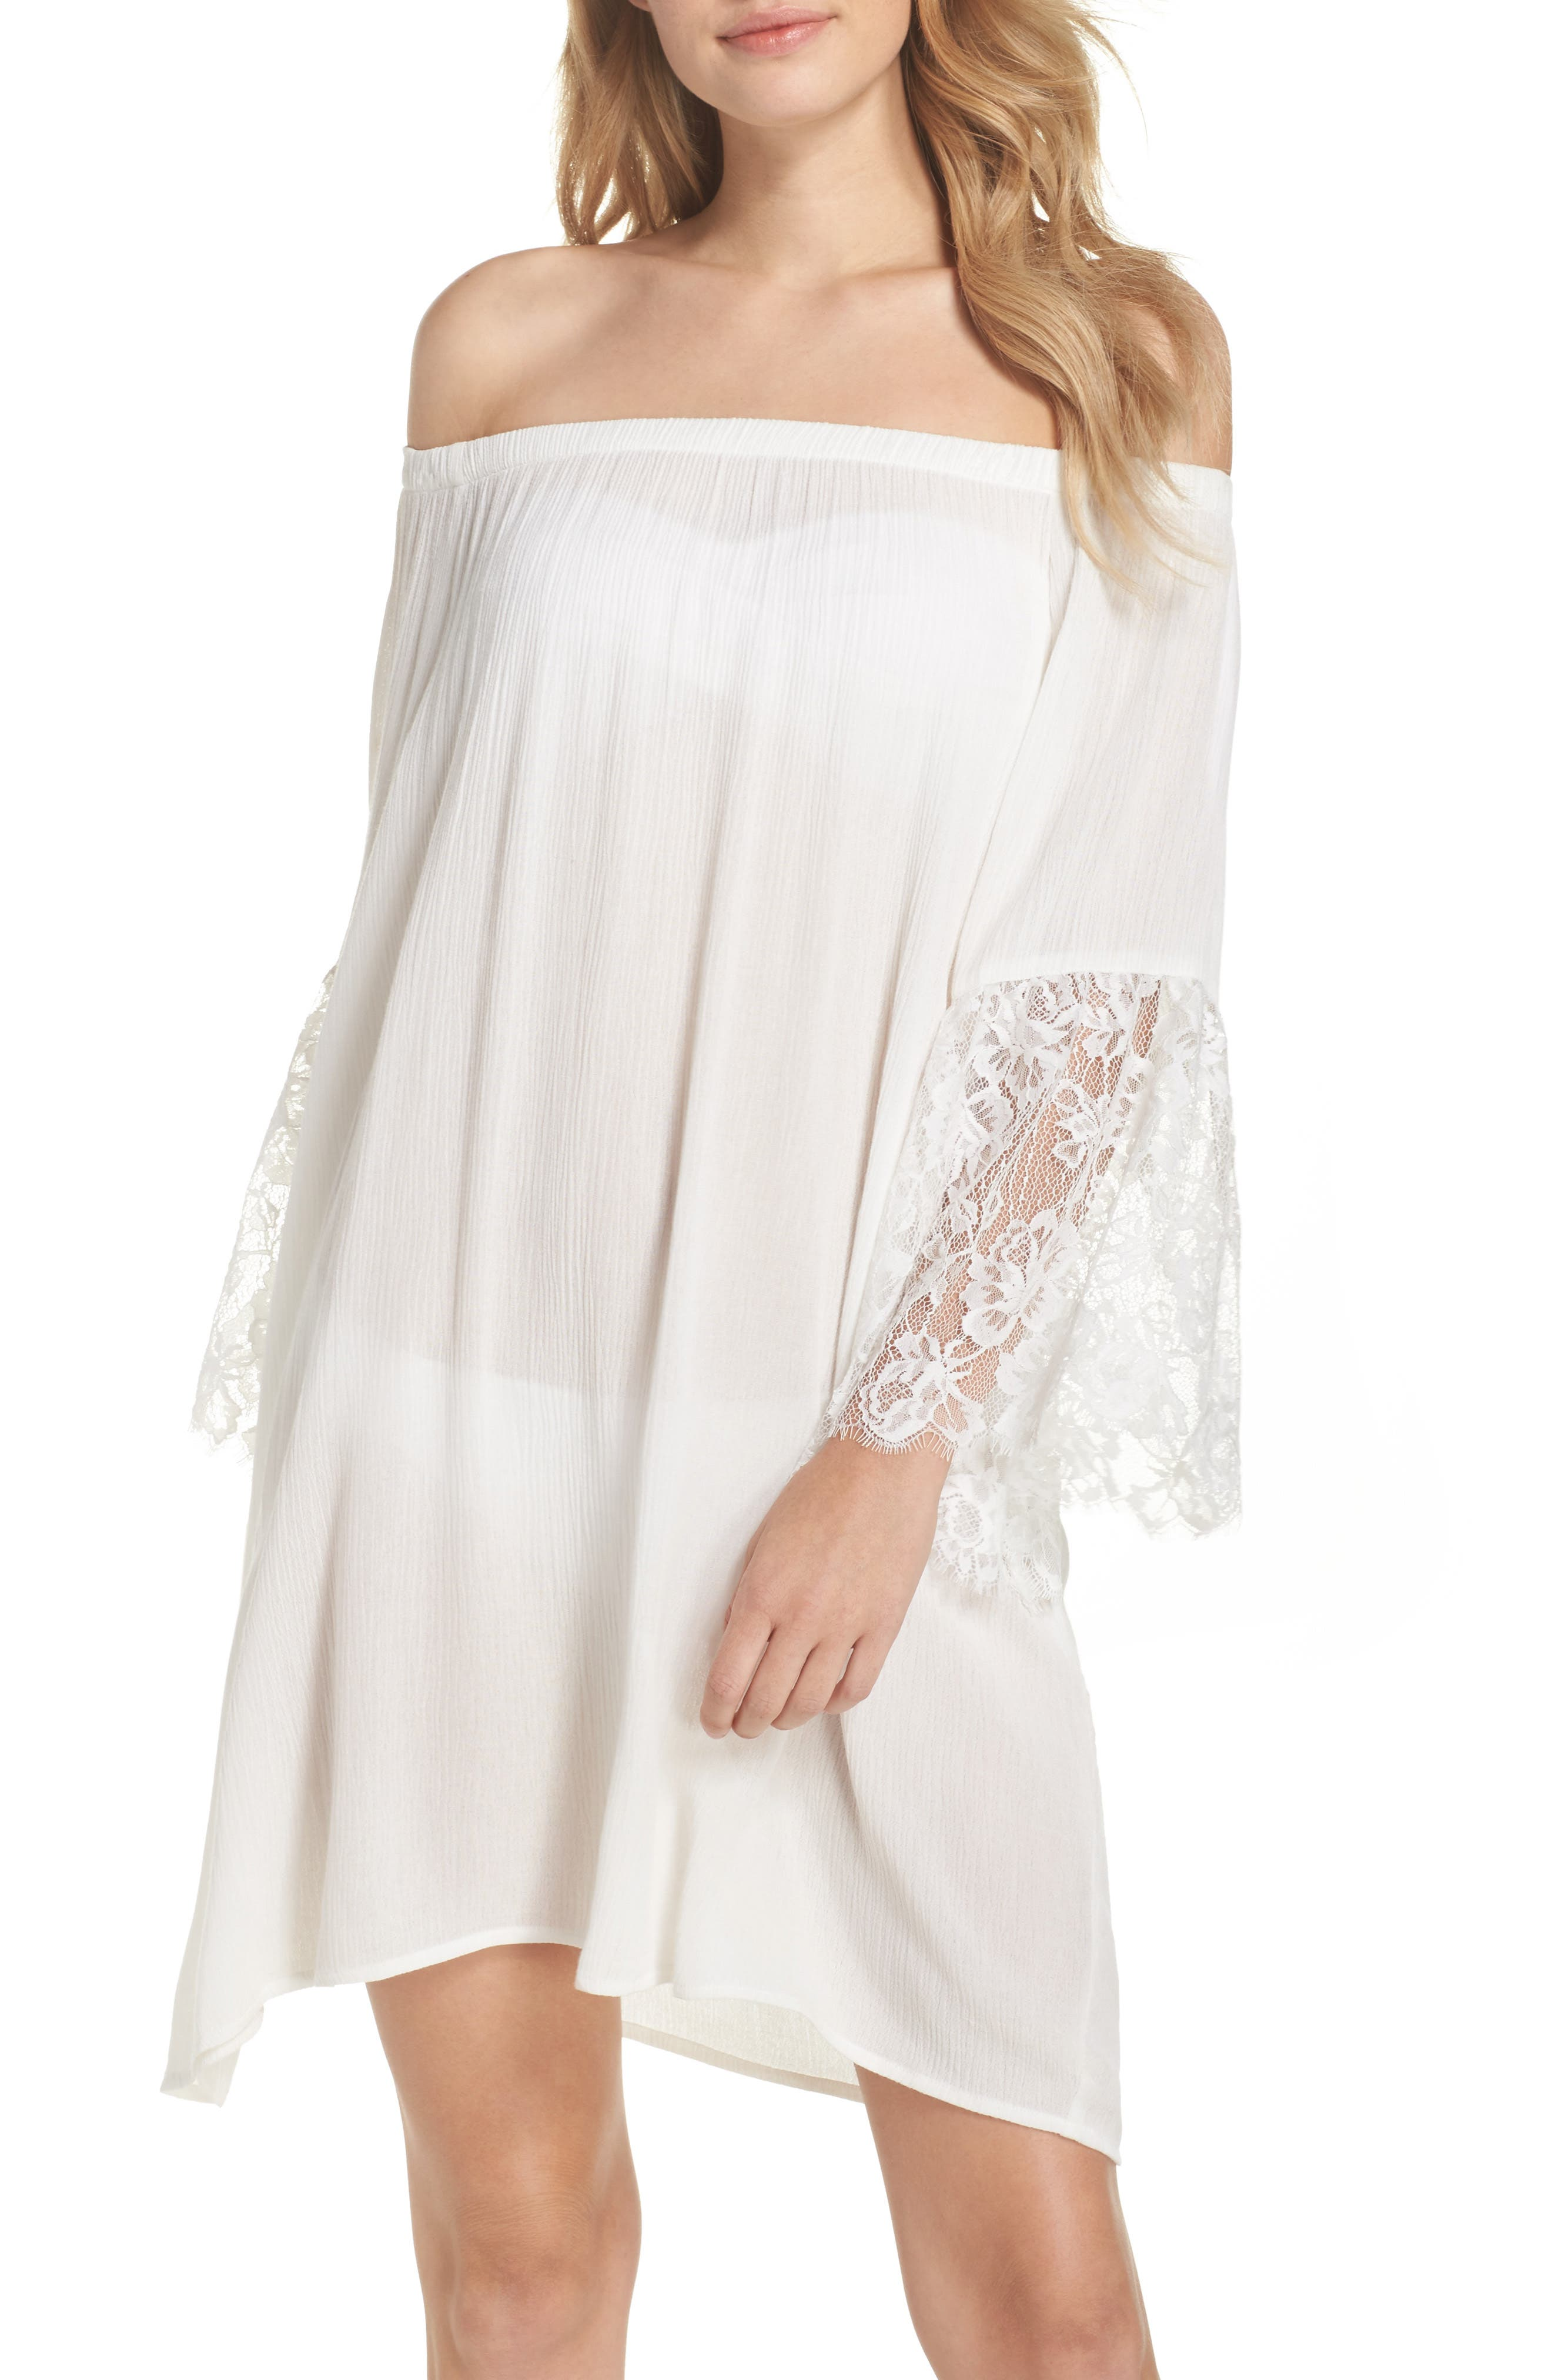 Off the Shoulder Cover-Up Dress,                             Main thumbnail 1, color,                             Ivory Egret